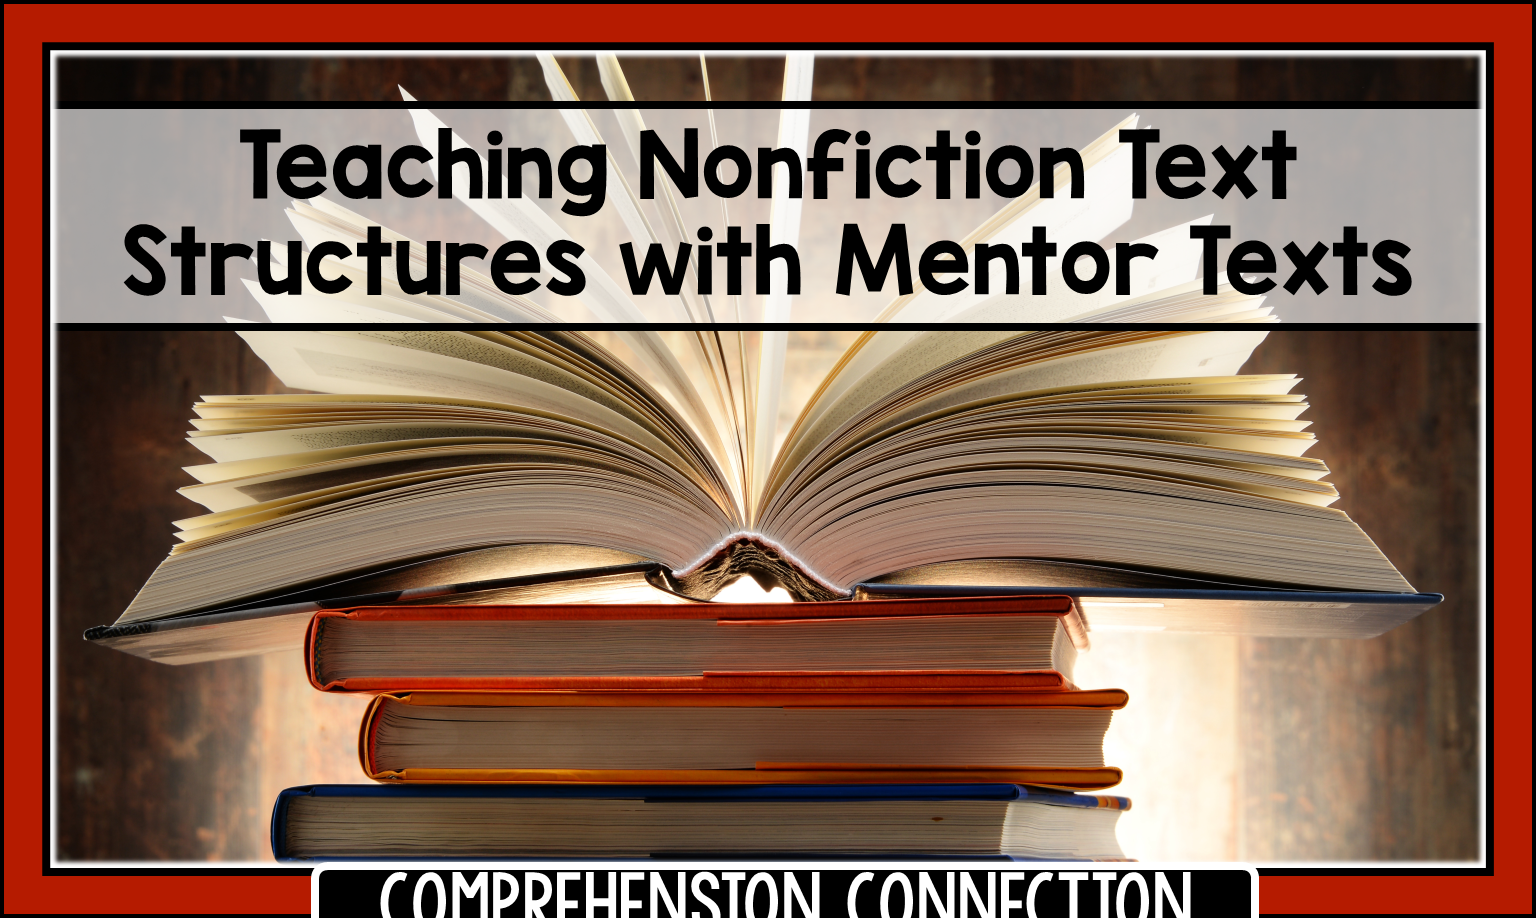 Teaching nonfiction text features just got easier with this post. It includes teaching tips with suggested readings, freebies, and more.